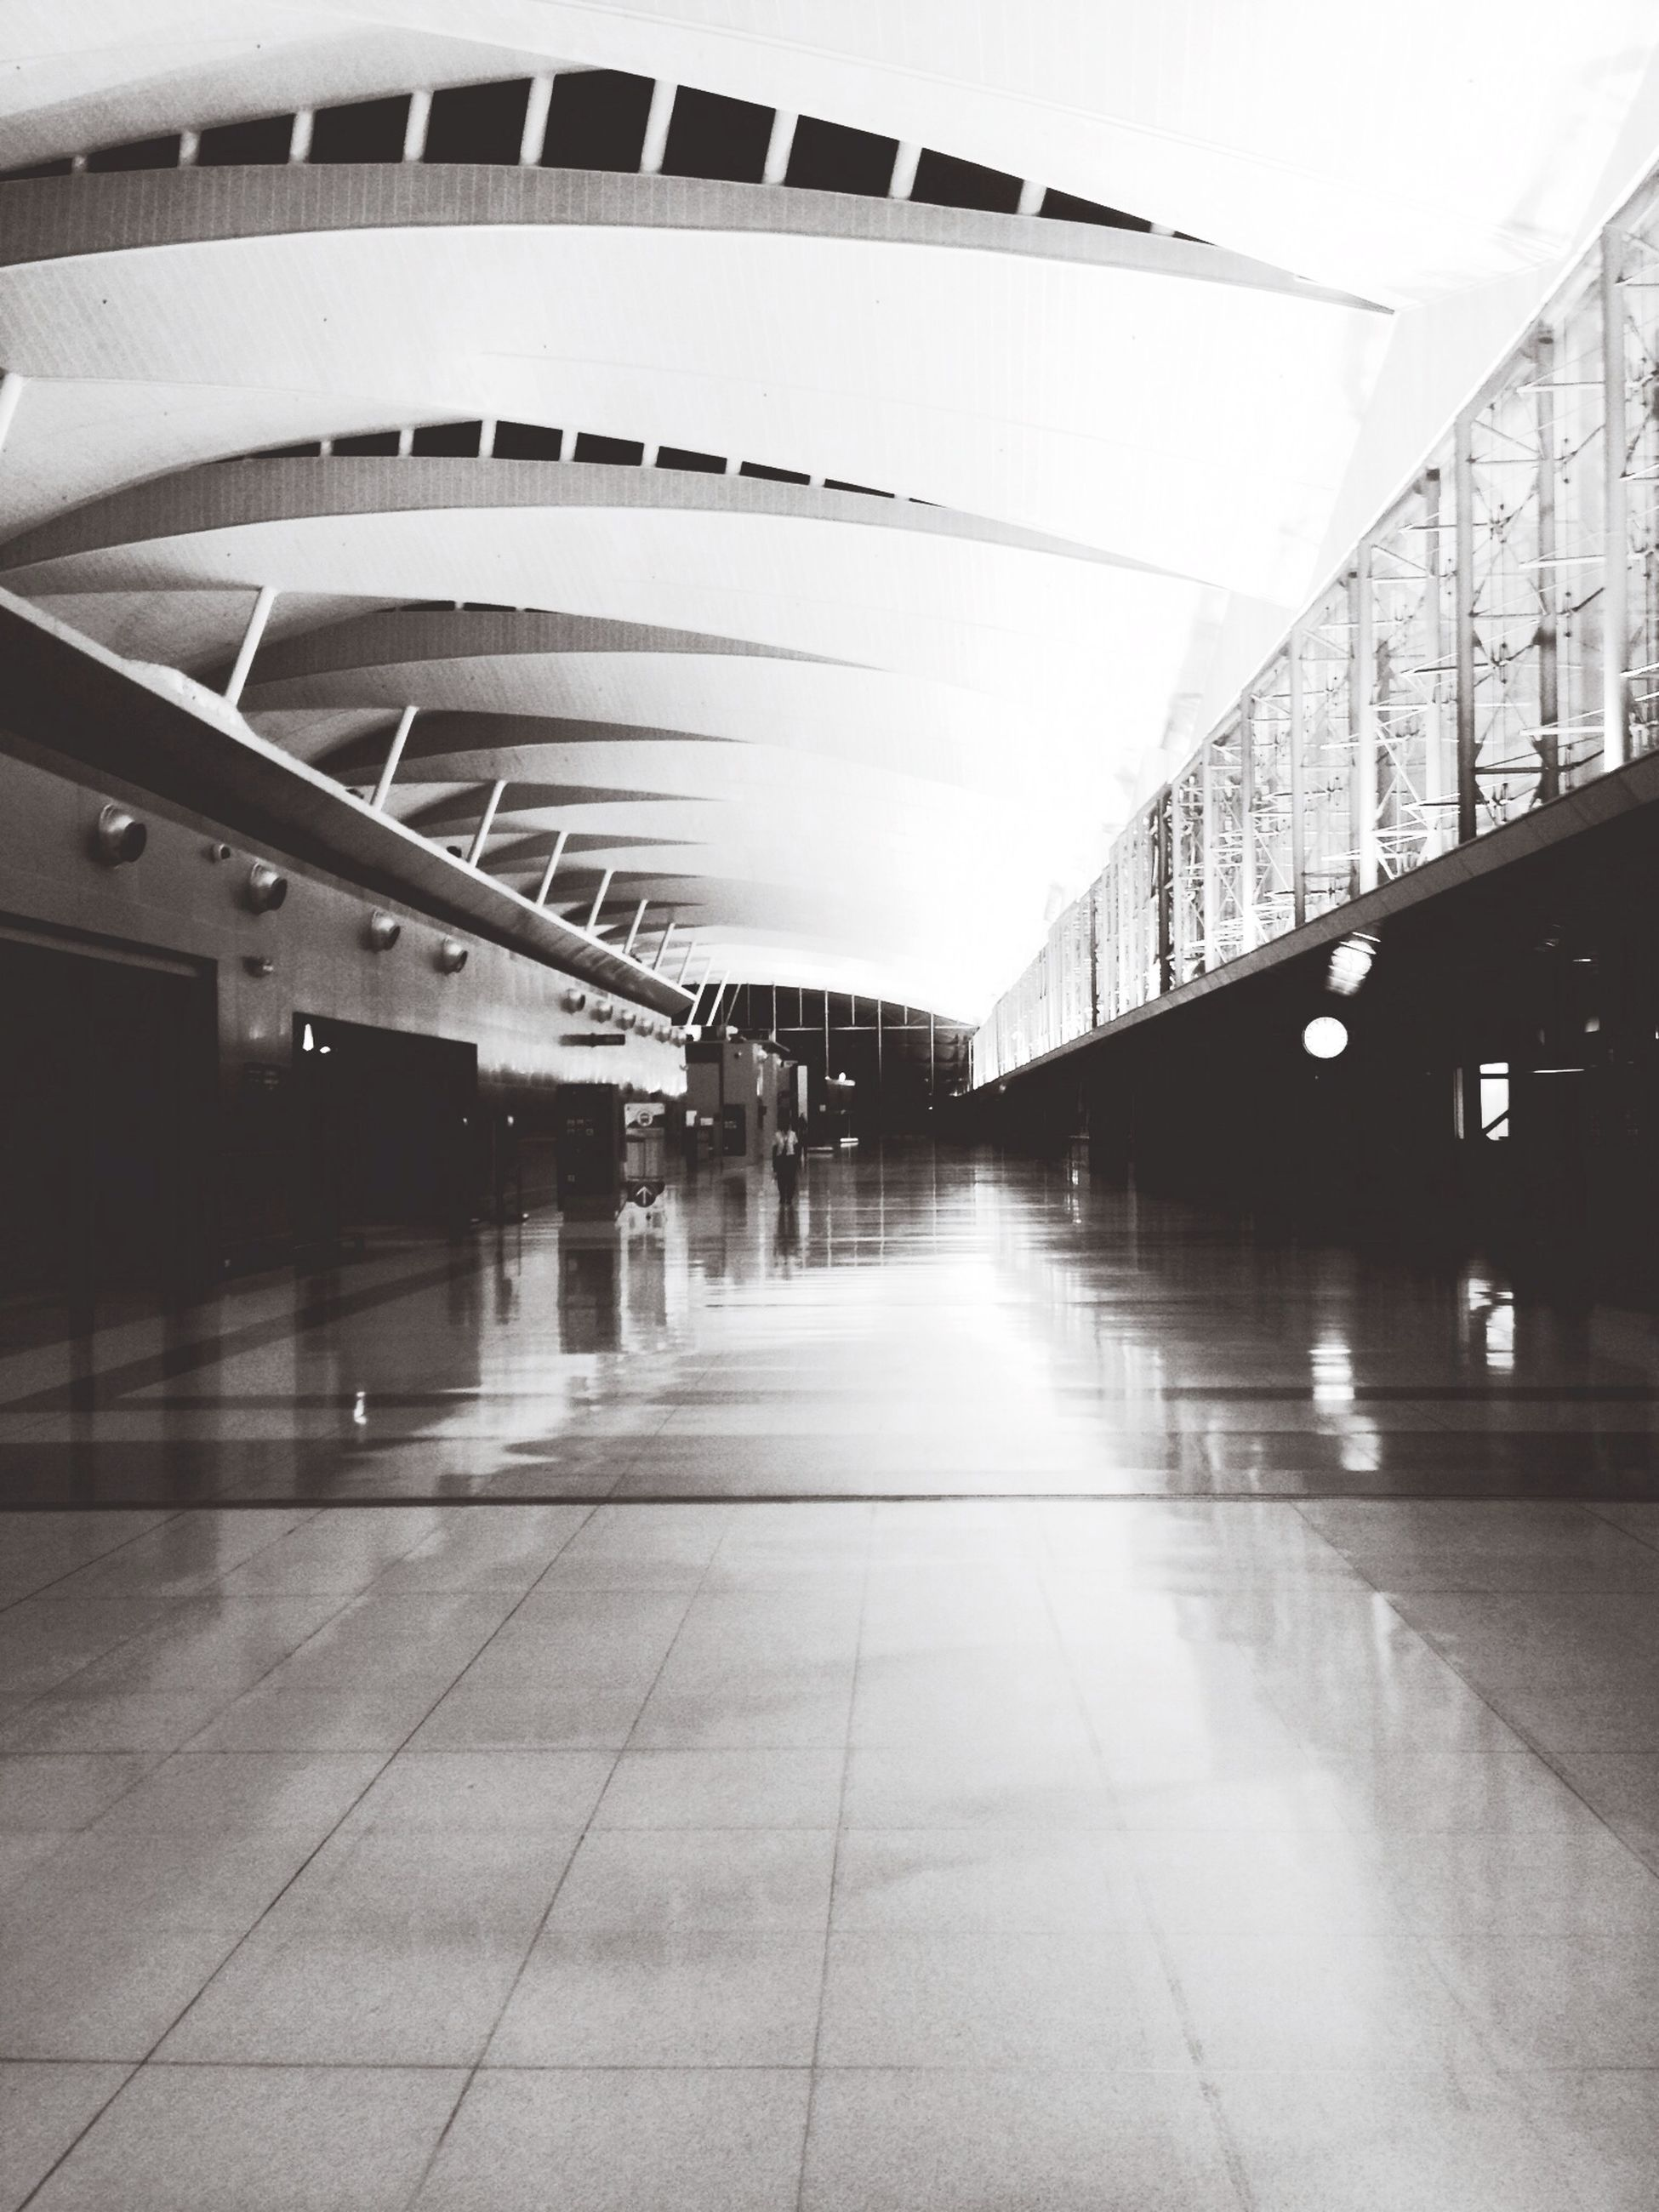 architecture, built structure, indoors, the way forward, ceiling, illuminated, diminishing perspective, empty, modern, lighting equipment, building, flooring, vanishing point, tiled floor, reflection, absence, corridor, no people, building exterior, incidental people